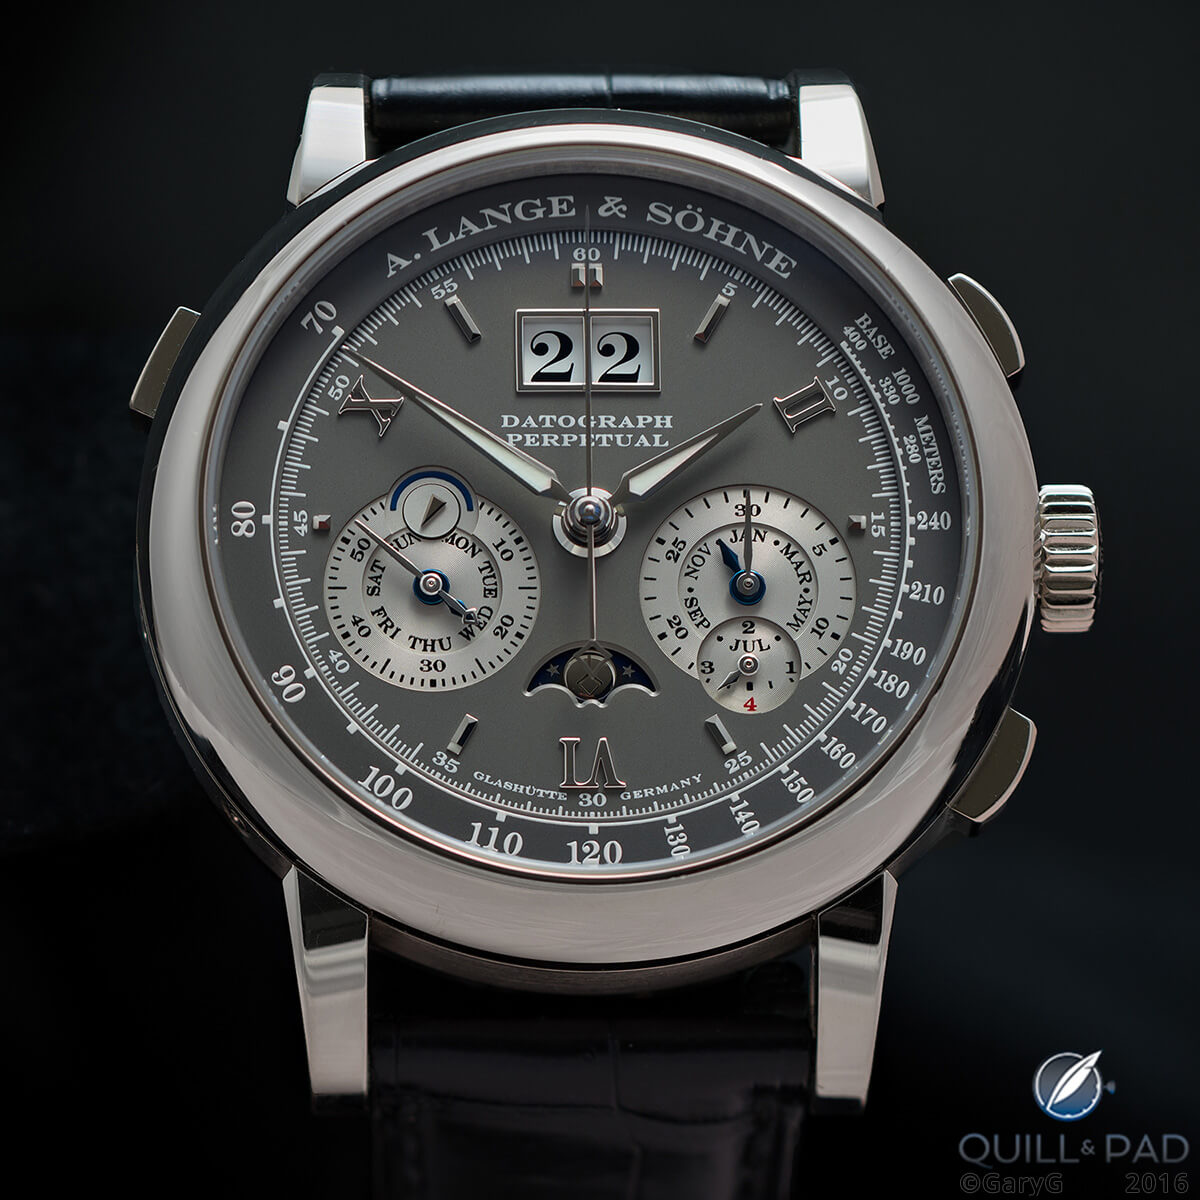 Calling your name? The A. Lange & Söhne Datograph Perpetual